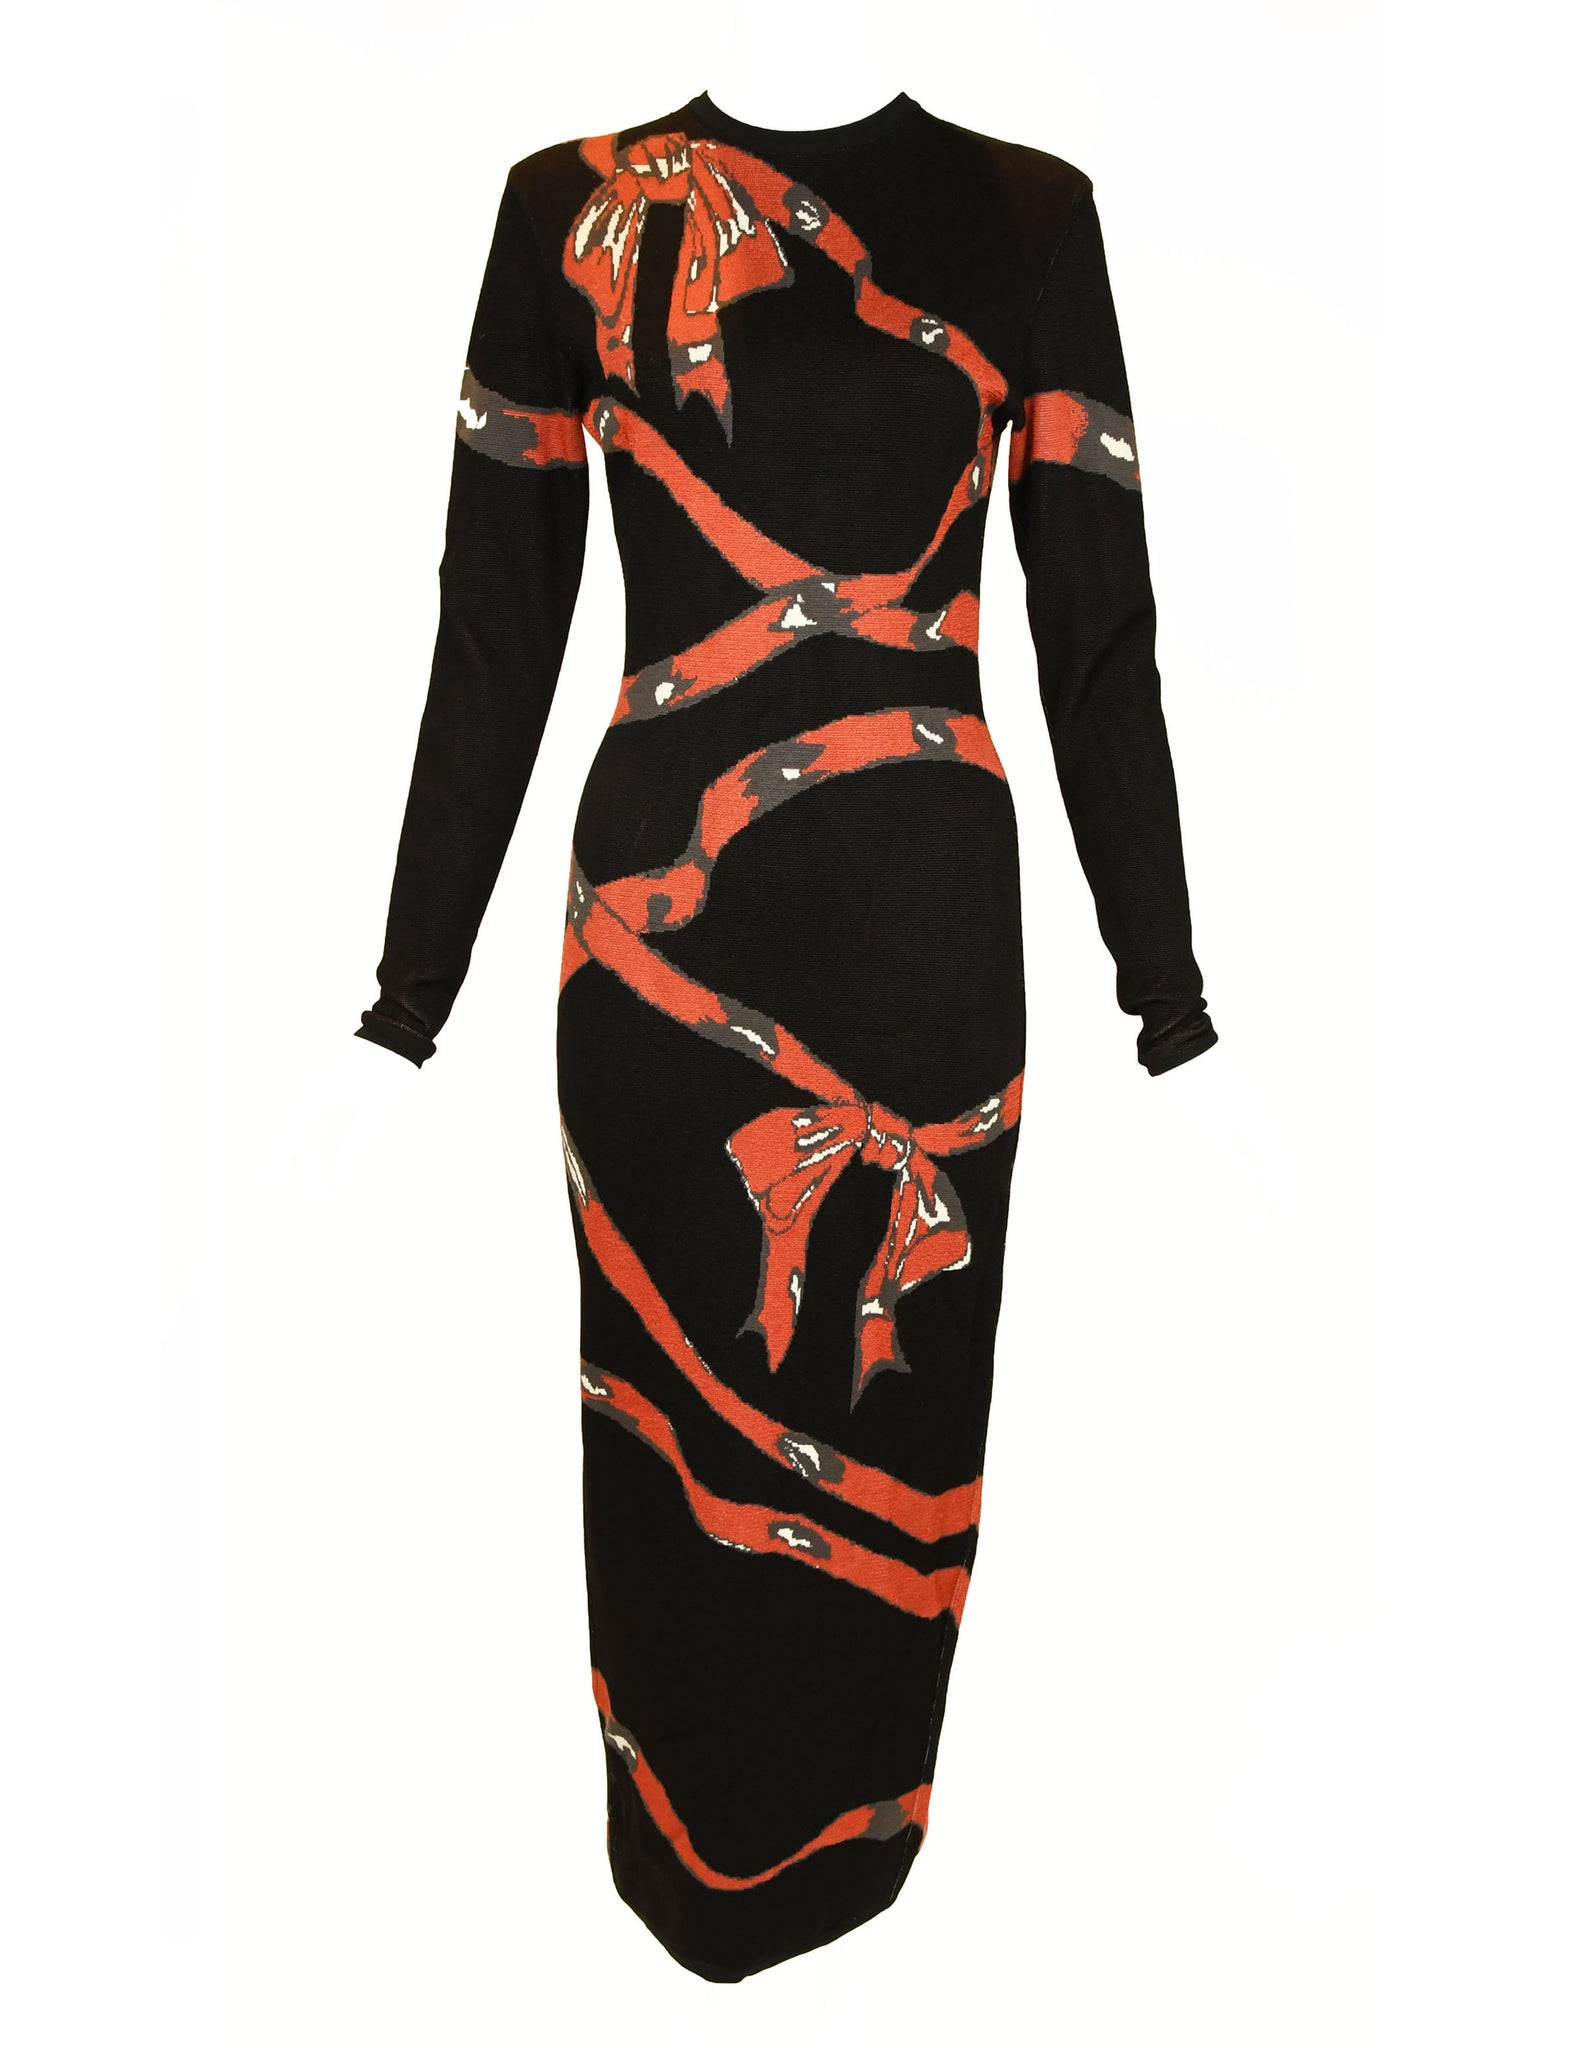 Vintage Alaia Bow Print Dress